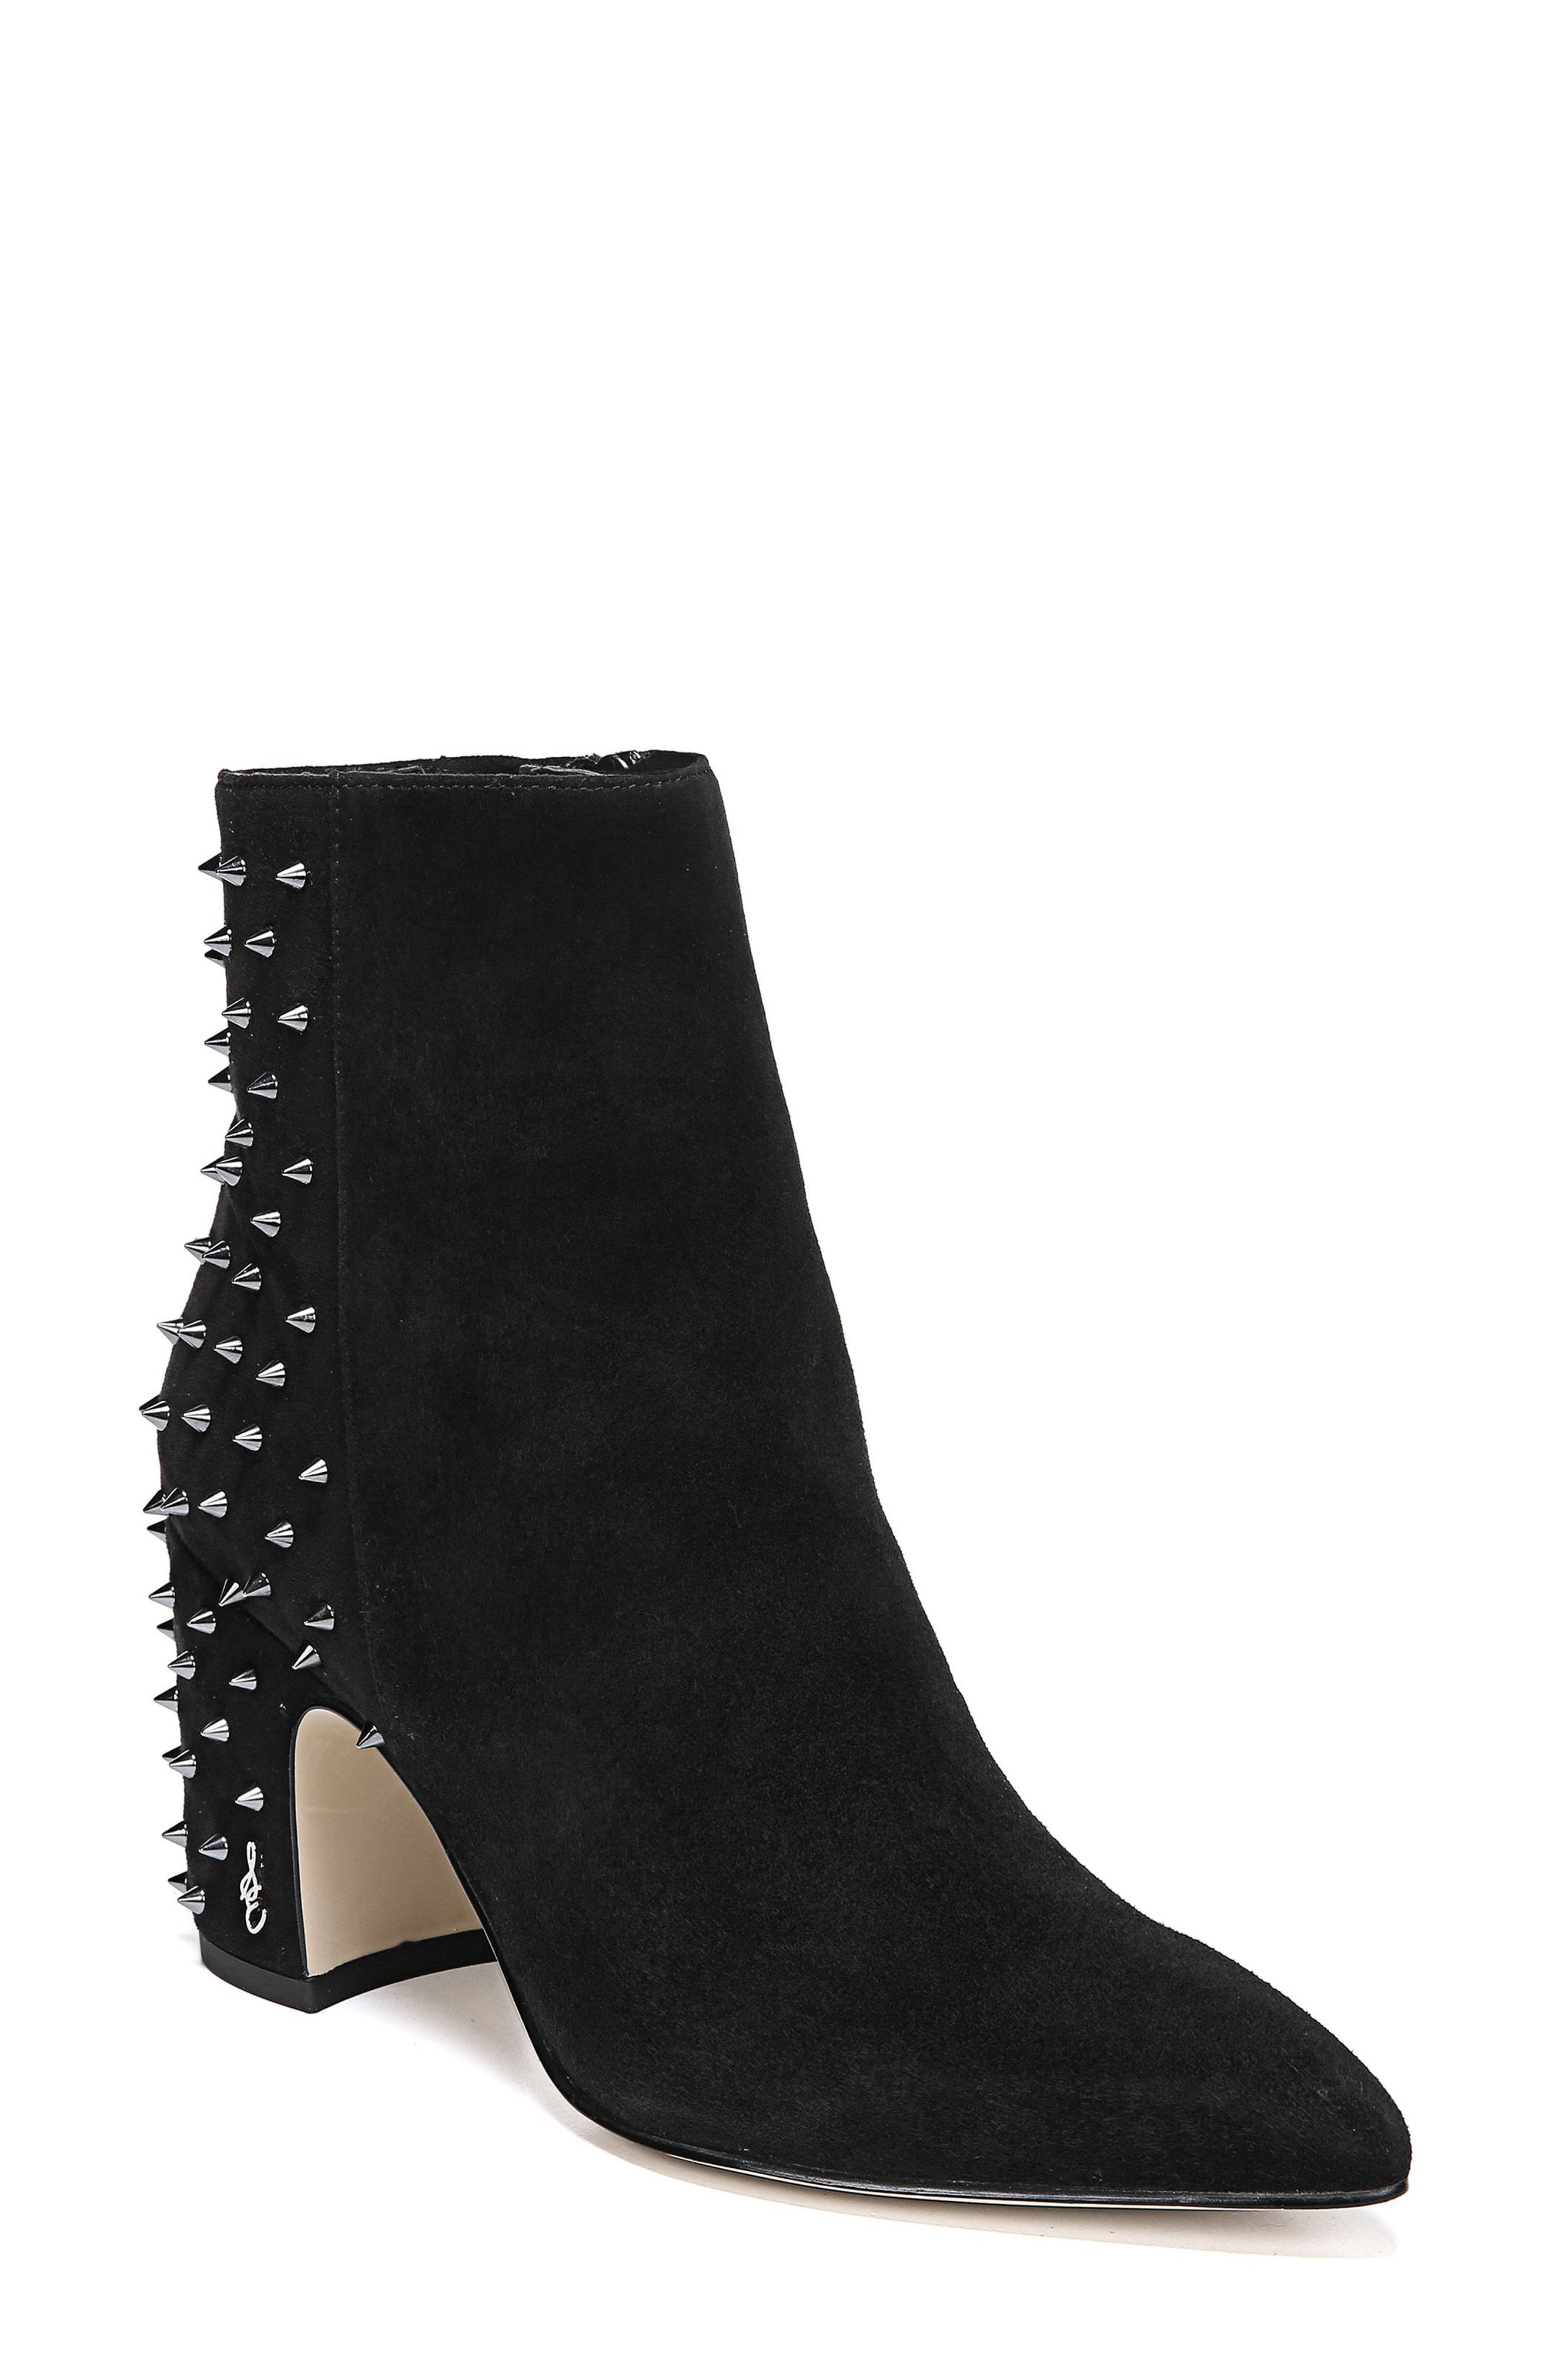 00b211060d0a7b Sam Edelman Heath Bootie available at  Nordstrom